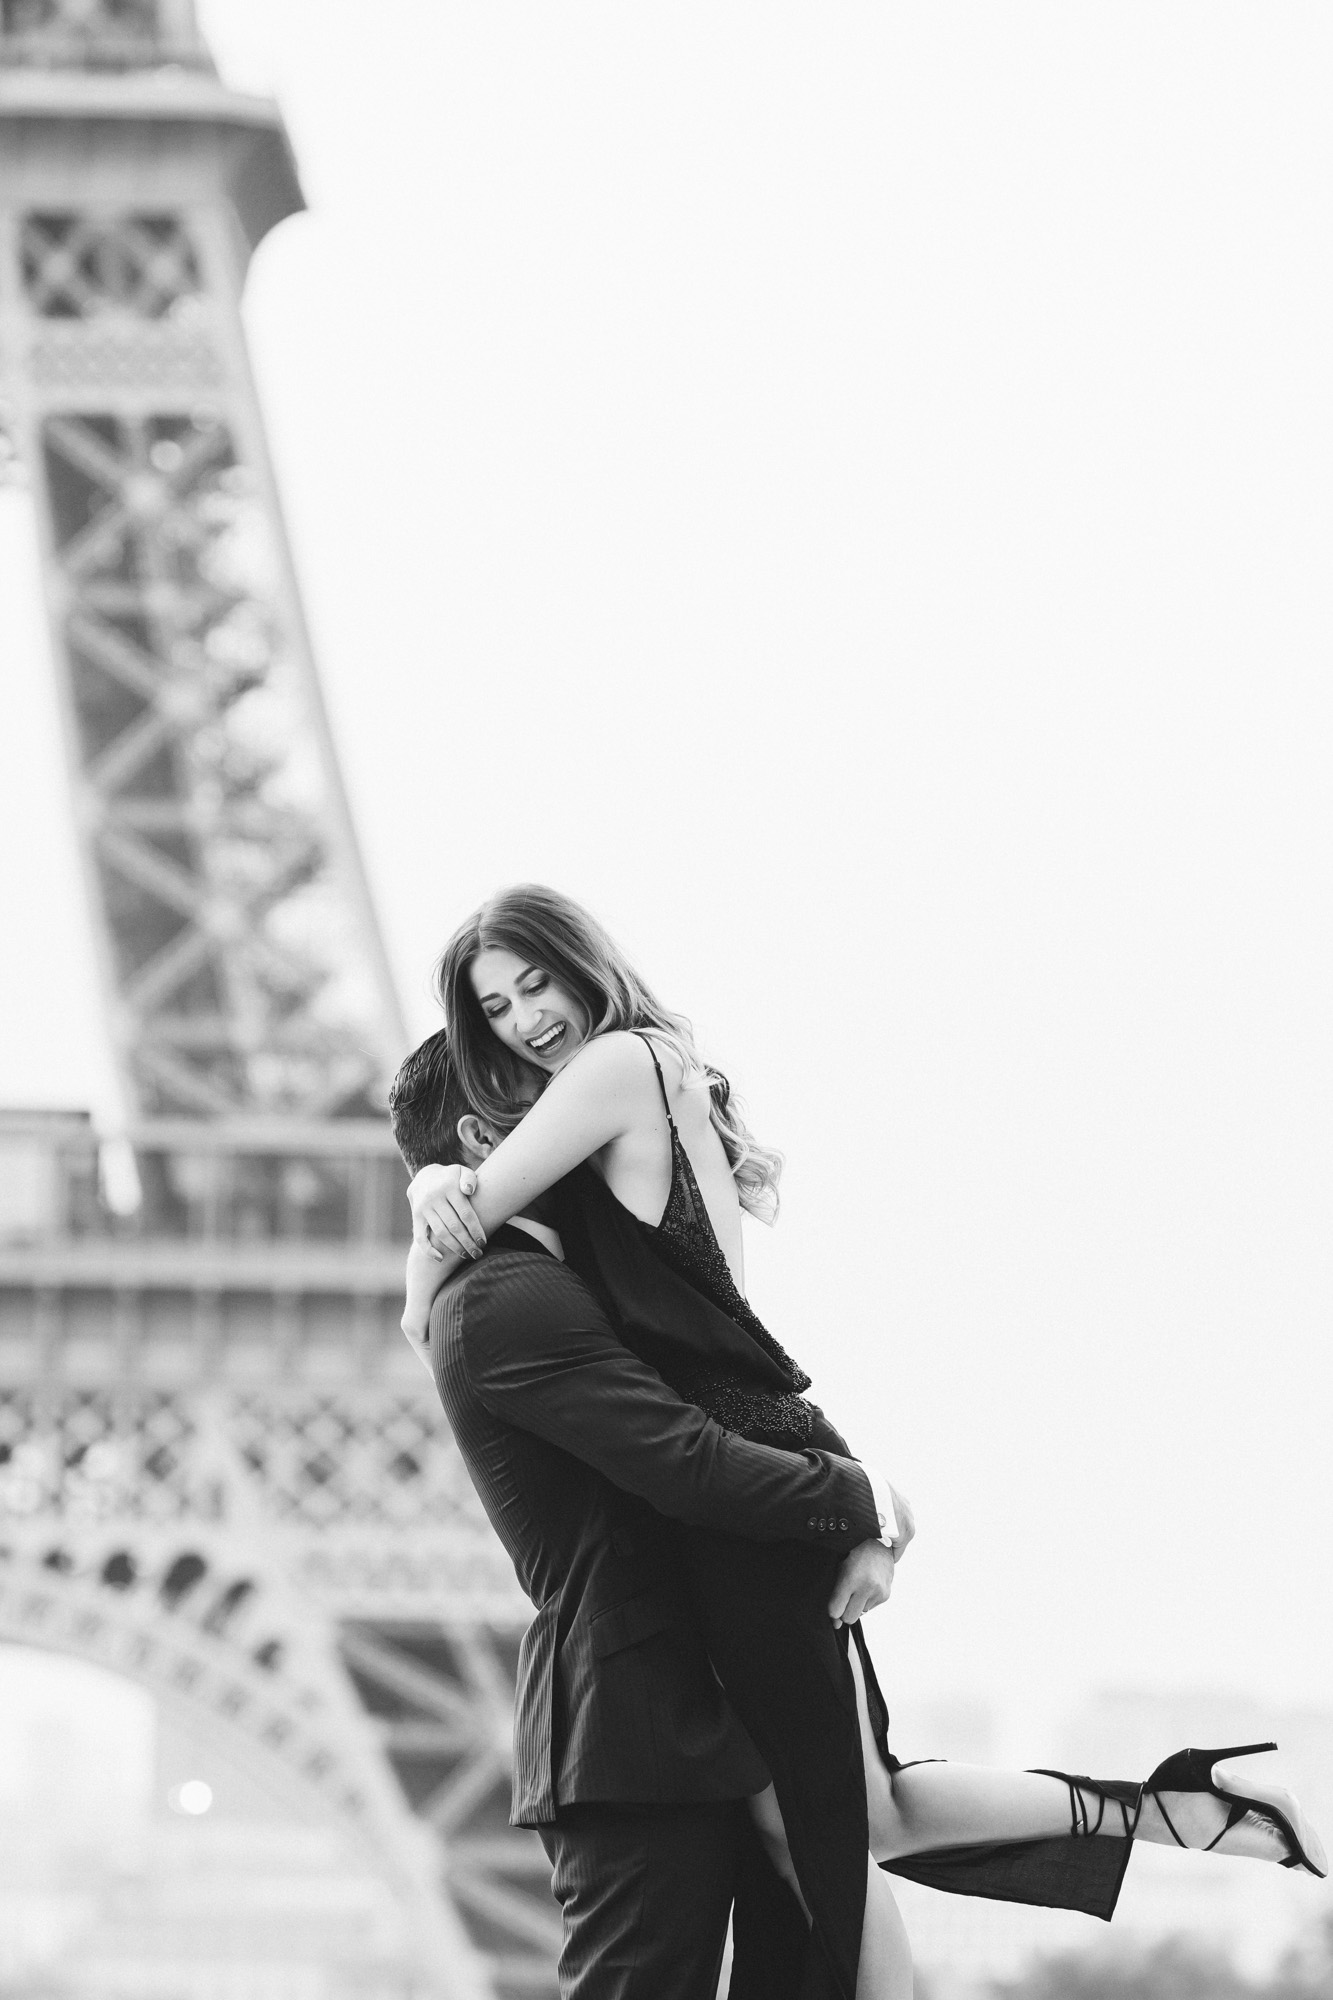 photographer in paris travel love story eiffel tower trocadero